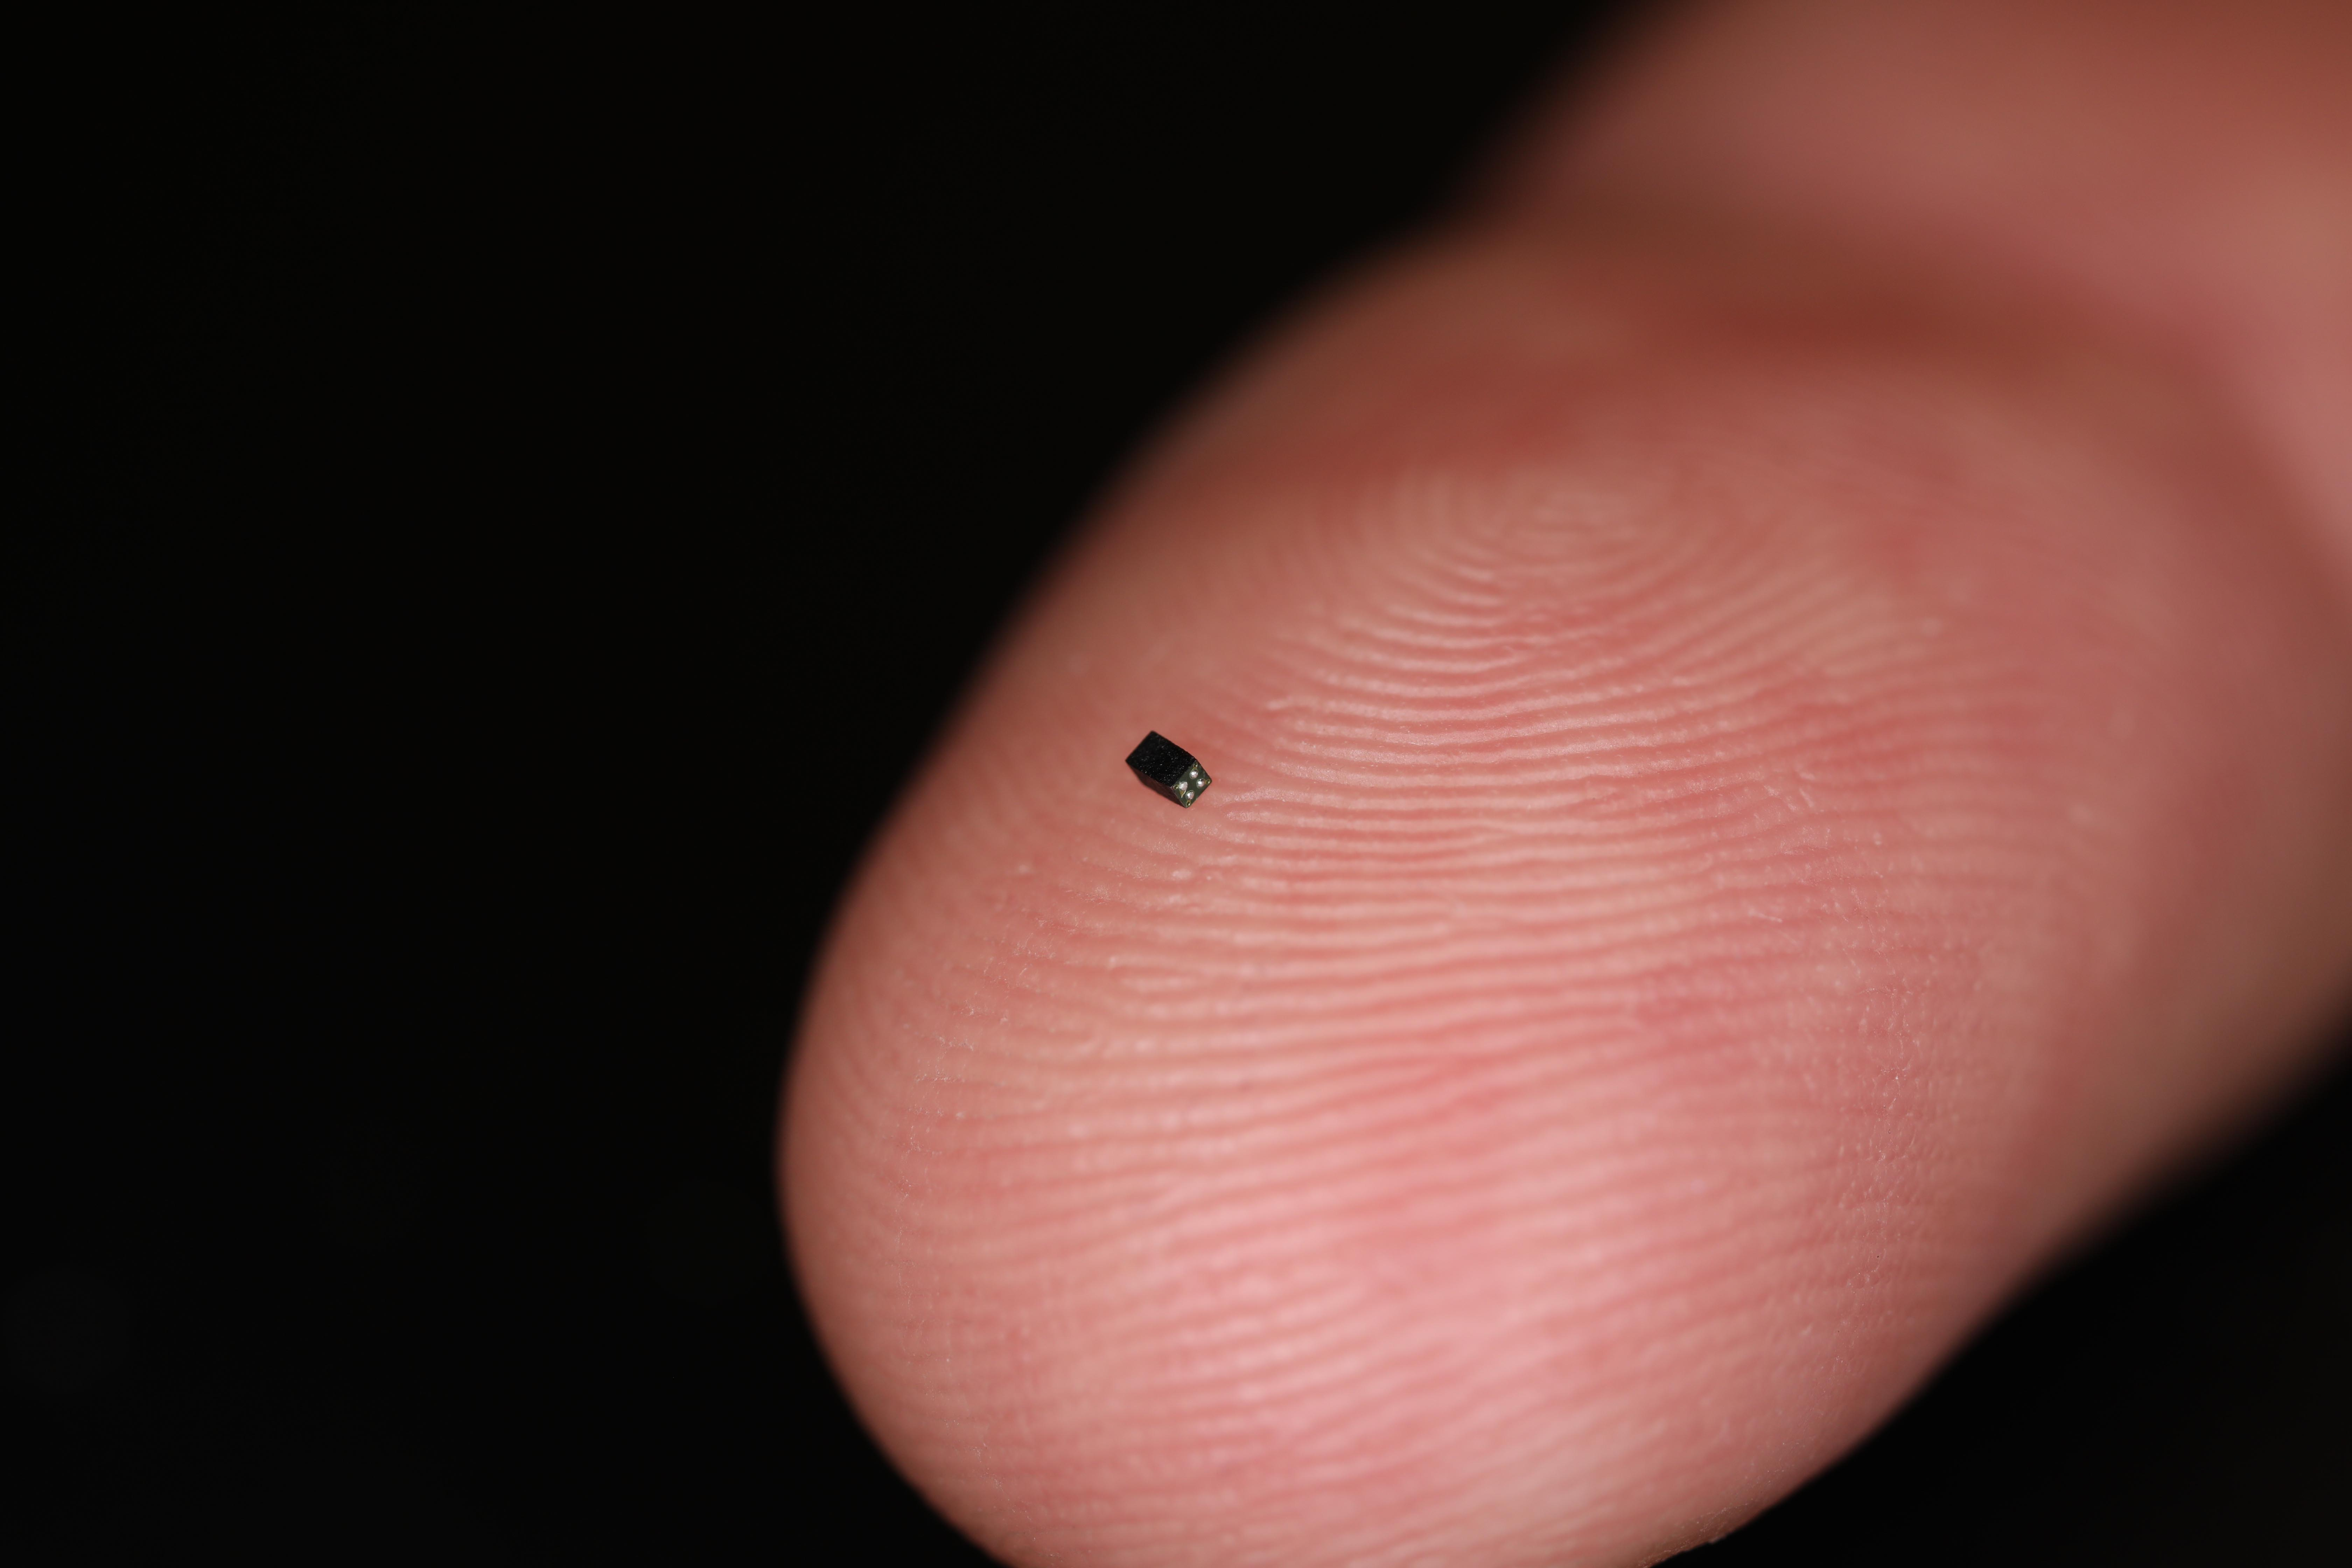 OVM6948 featuring the OV6948, The Smallest Image Sensor Commercially Available